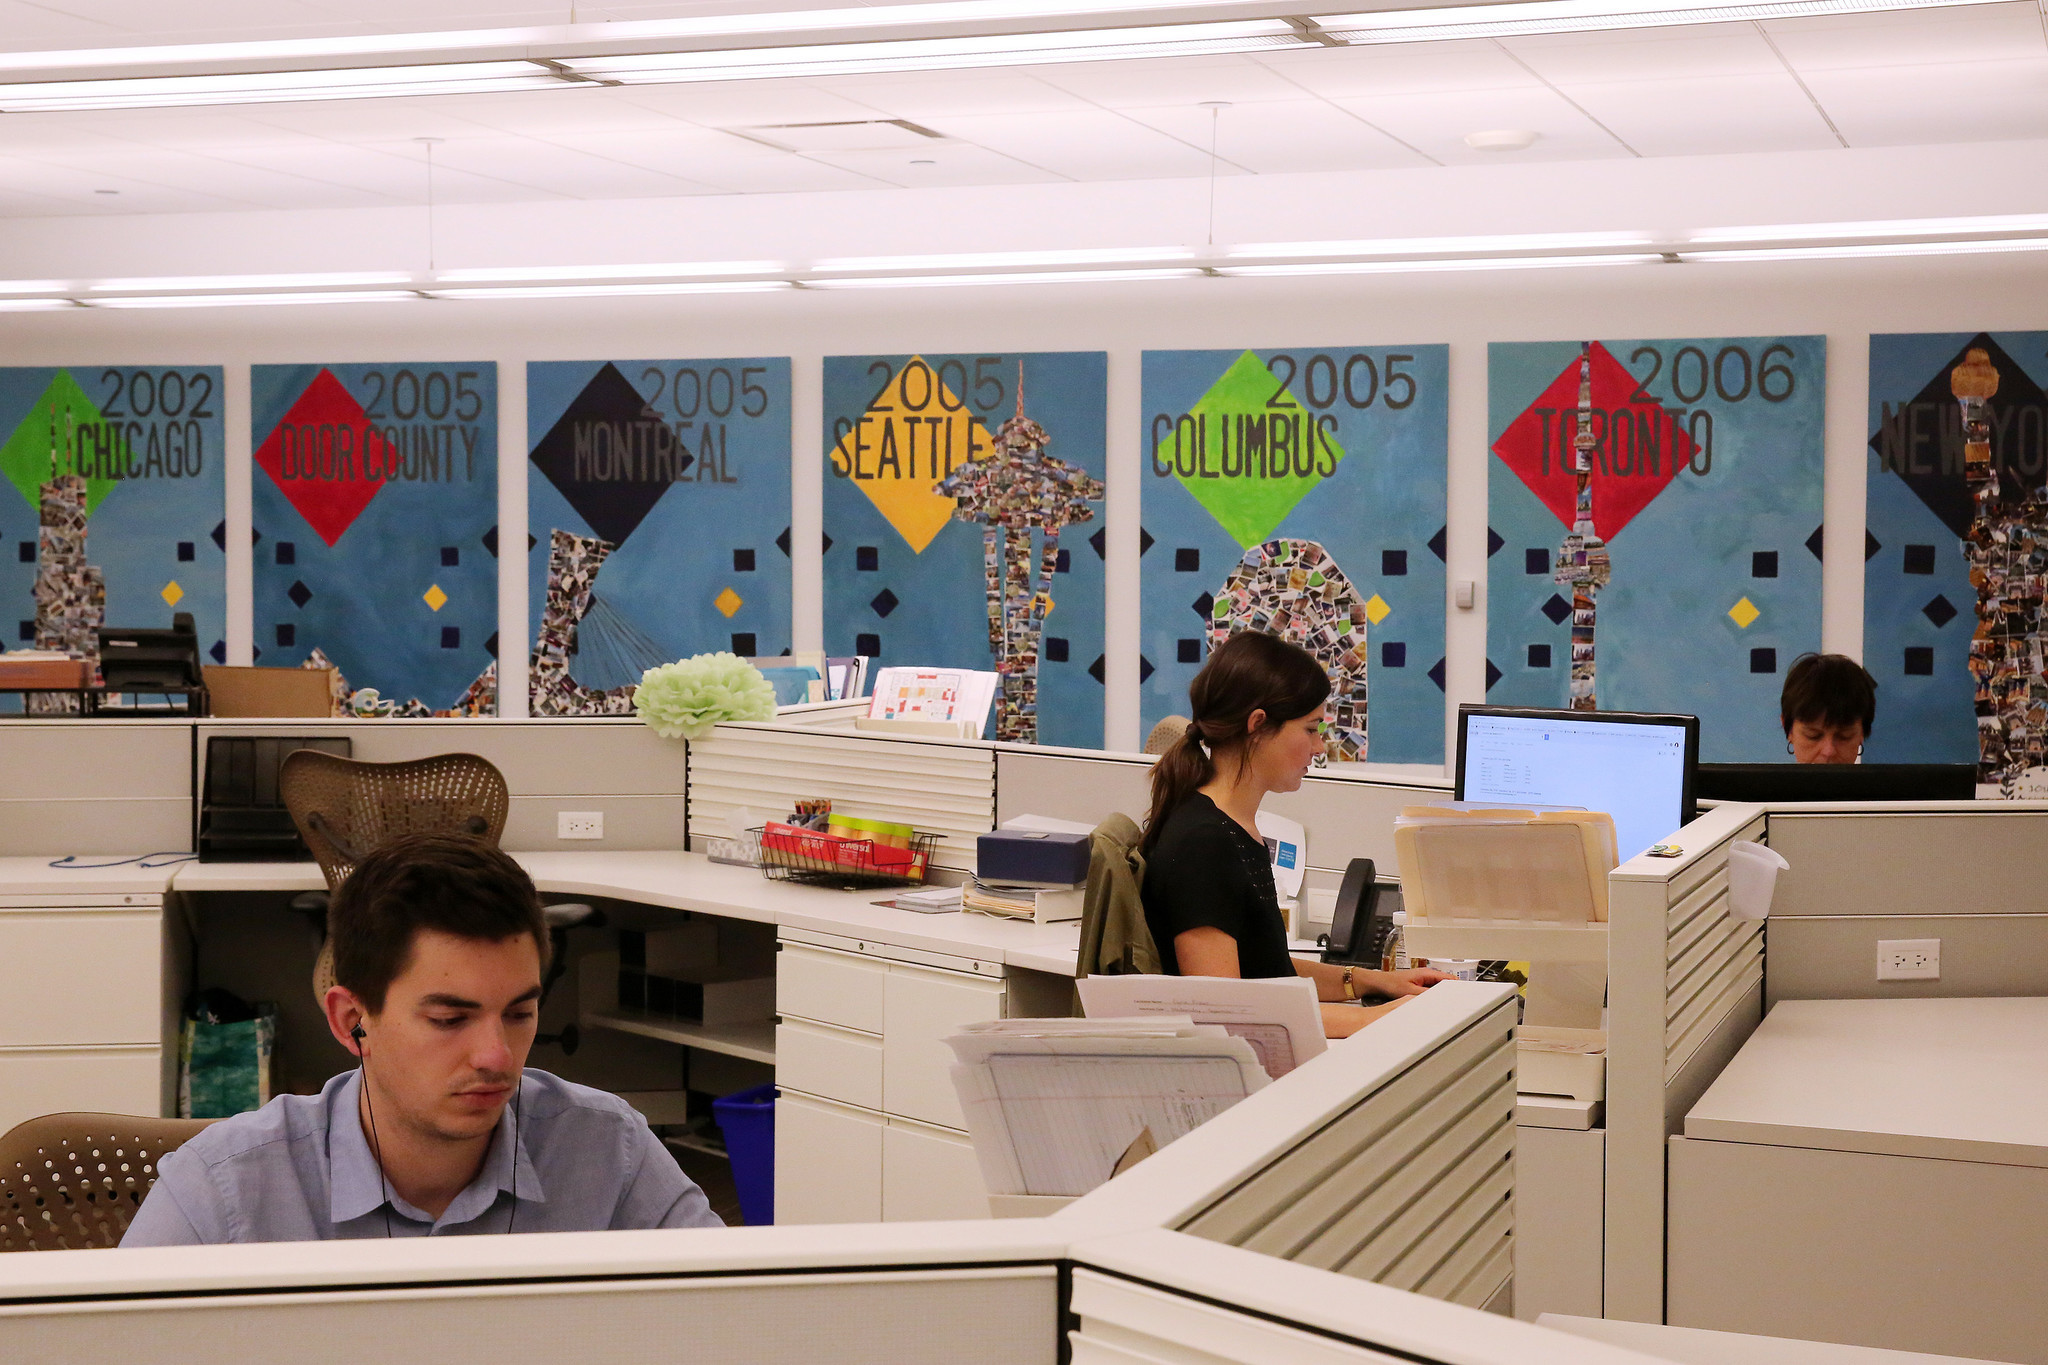 Consulting Firm West Monroe Partners Plans To Add 500 Jobs In Chicago